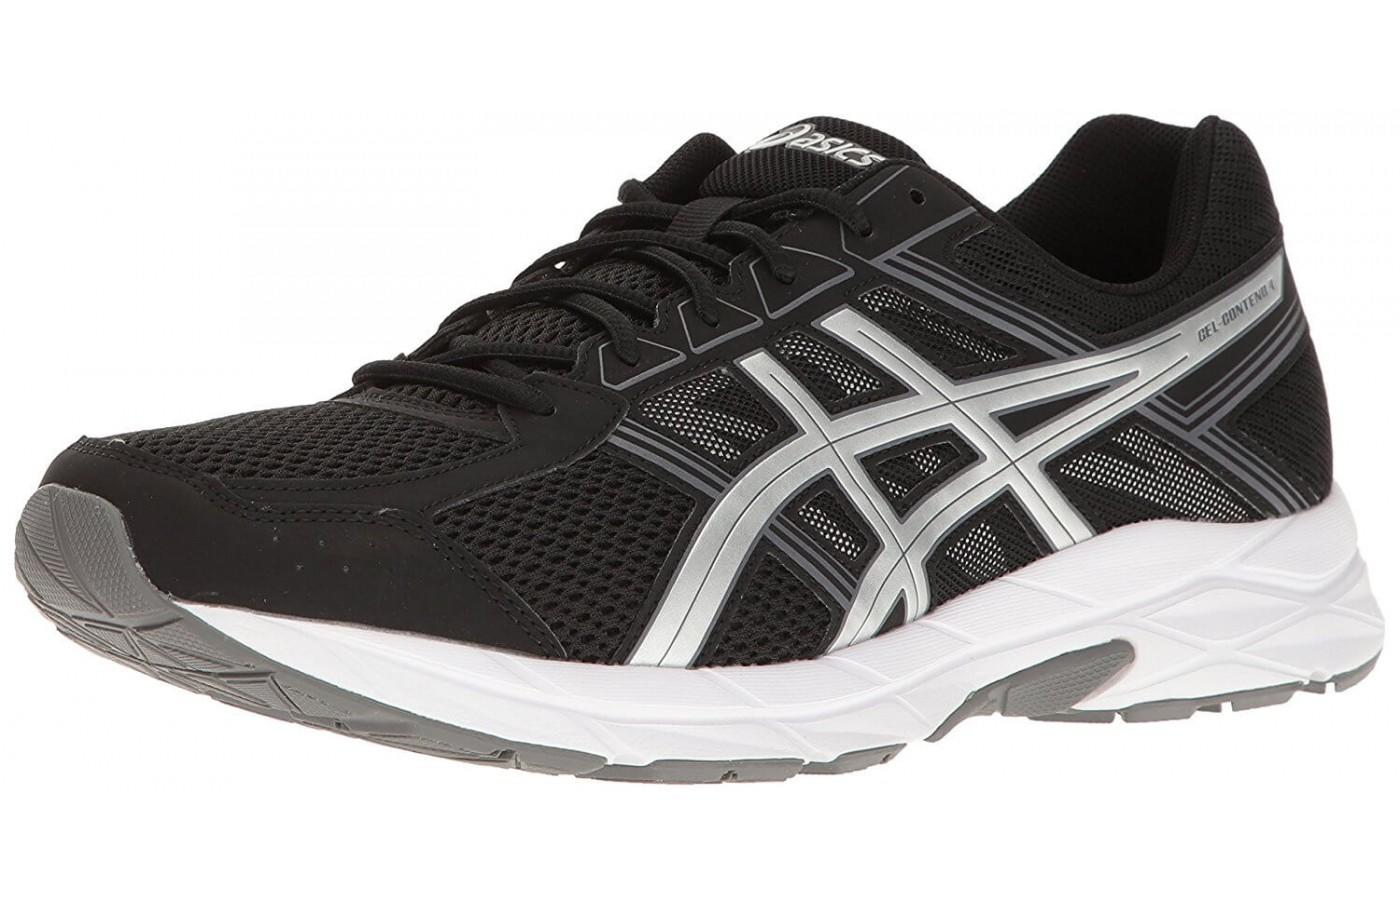 Asics Gel Contend 4 is an affordable, high quality shoe.